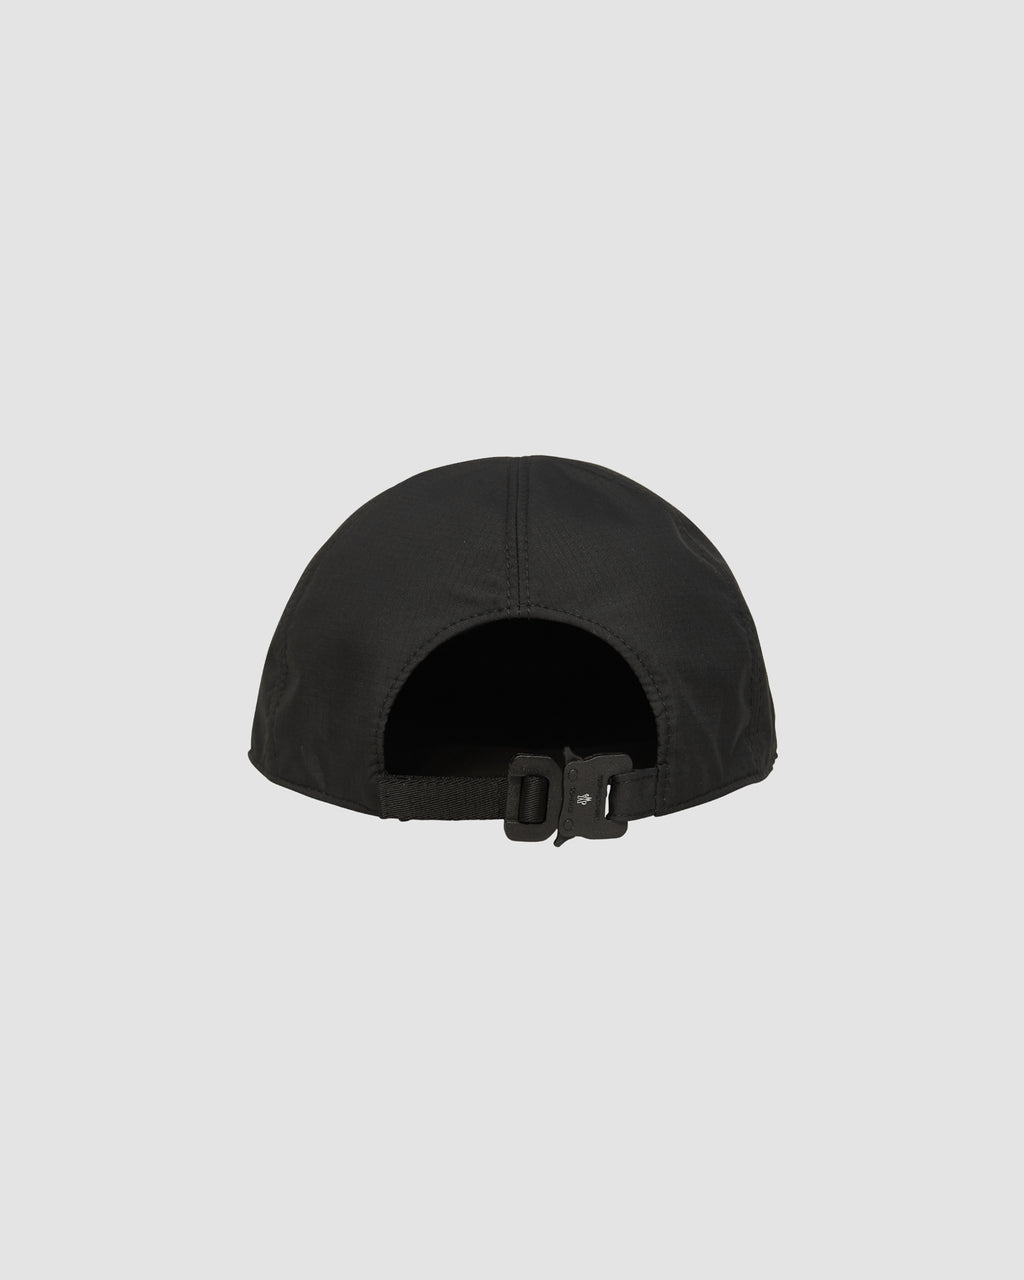 1017 ALYX 9SM | MONCLER BASEBALL CAP | Hat | BLACK, Google Shopping, HATS, Man, Moncler, S20, UNISEX, Woman